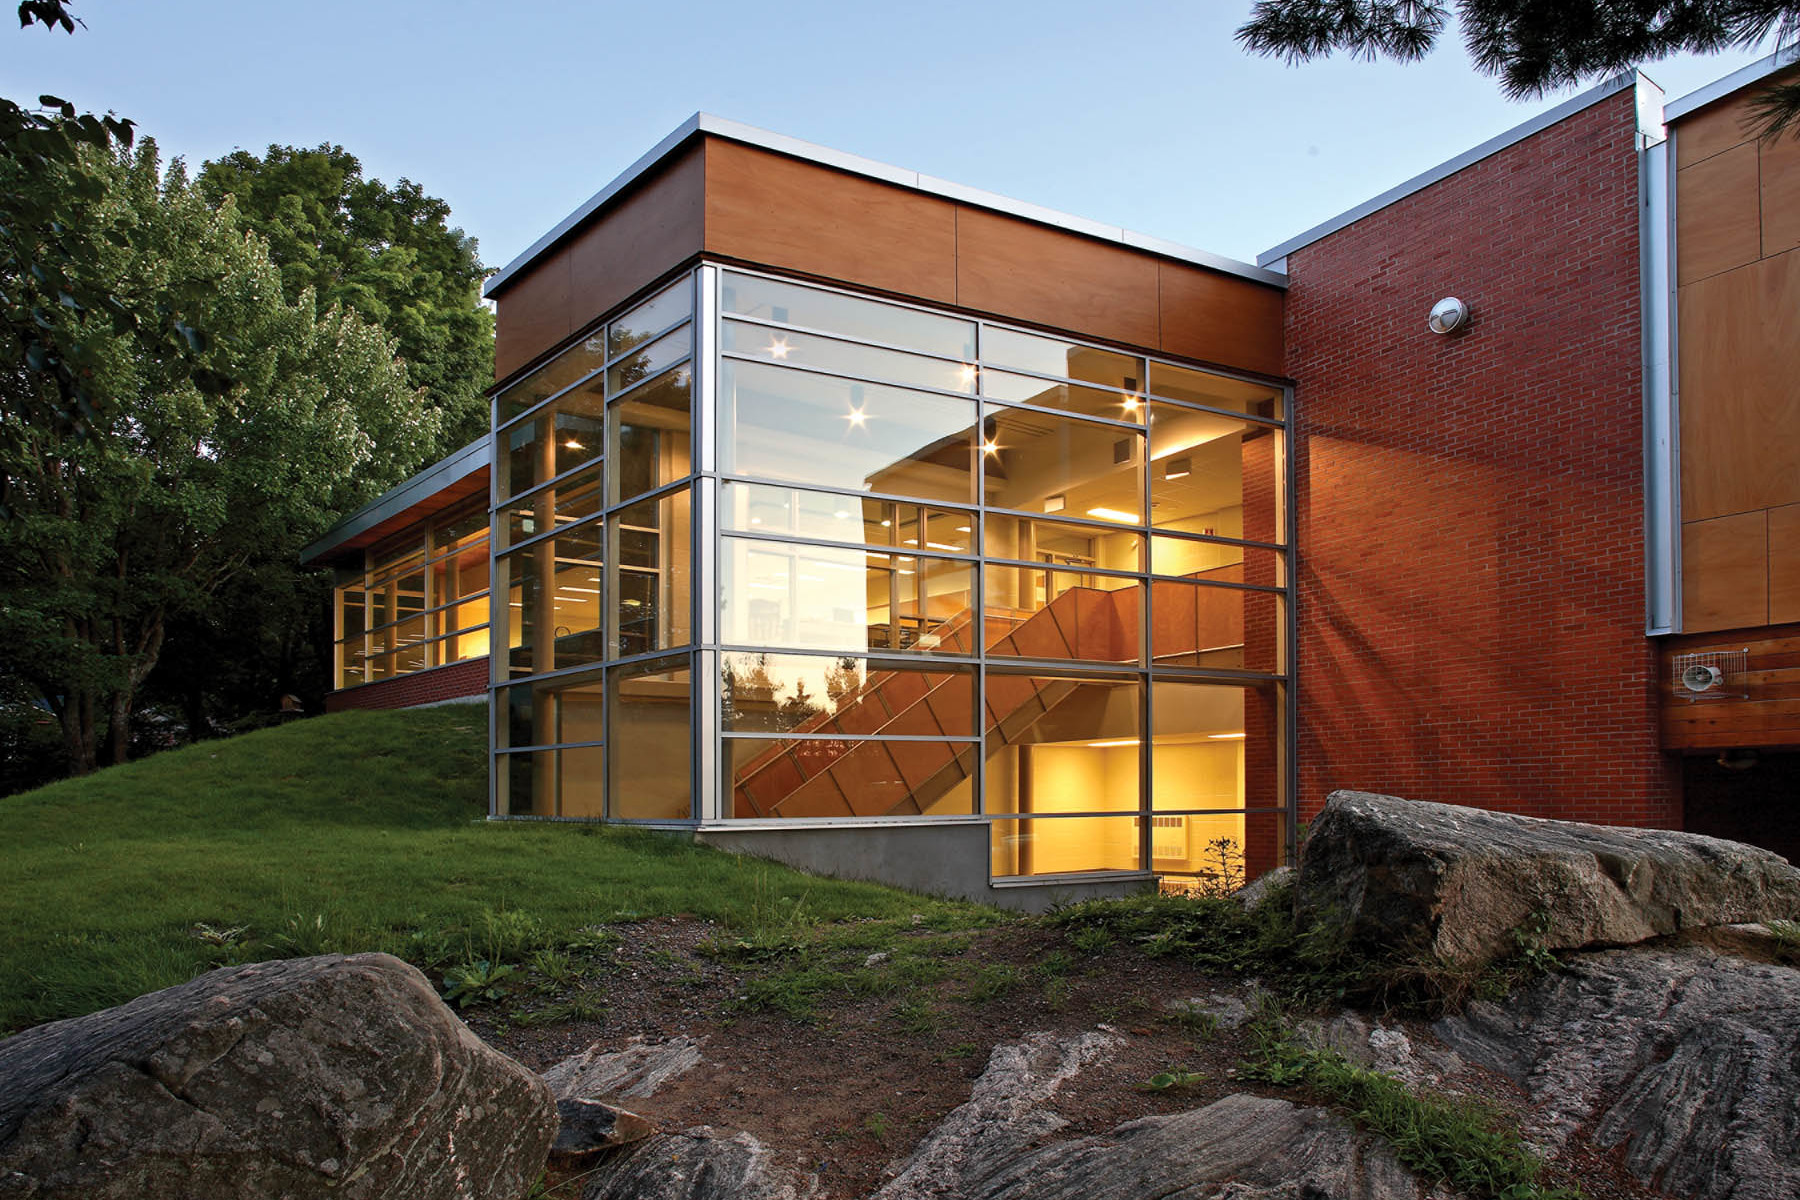 Illuminated glazed double height staircase and red brick façade nestled in green hill with trees and large rocks at dusk